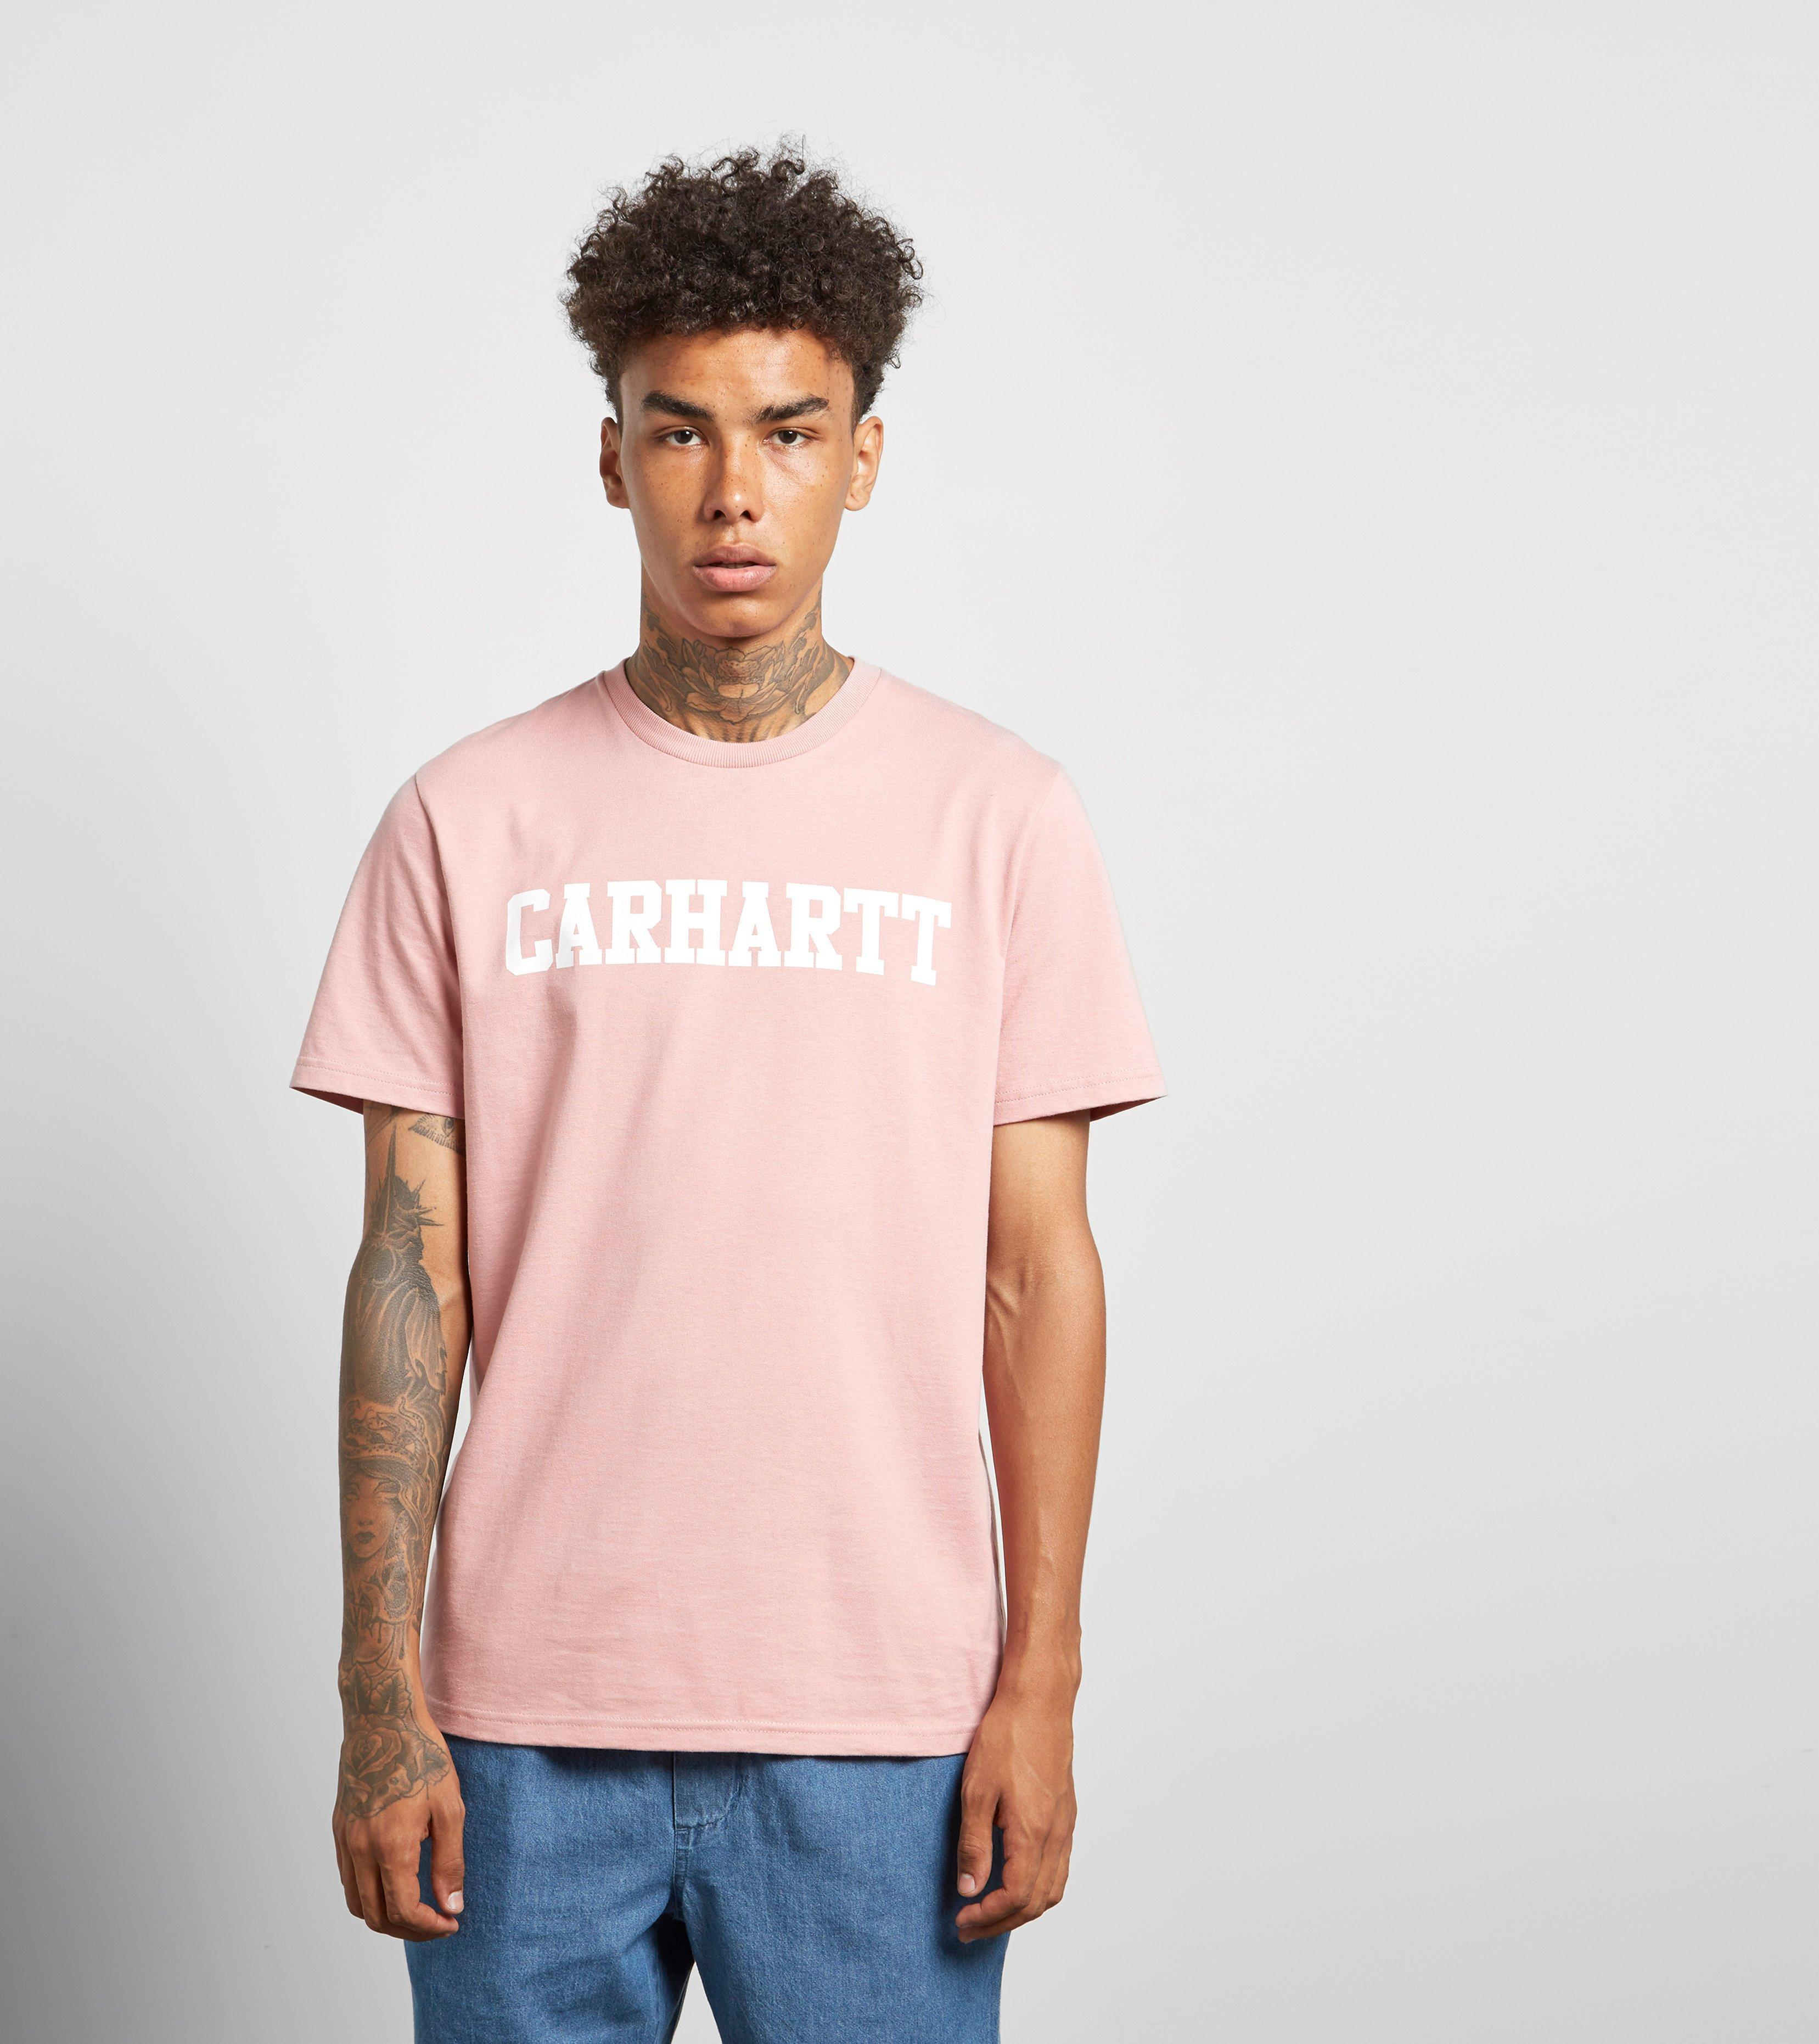 9a2ea72e04 Carhartt WIP College Short Sleeve T-shirt in Pink - Lyst